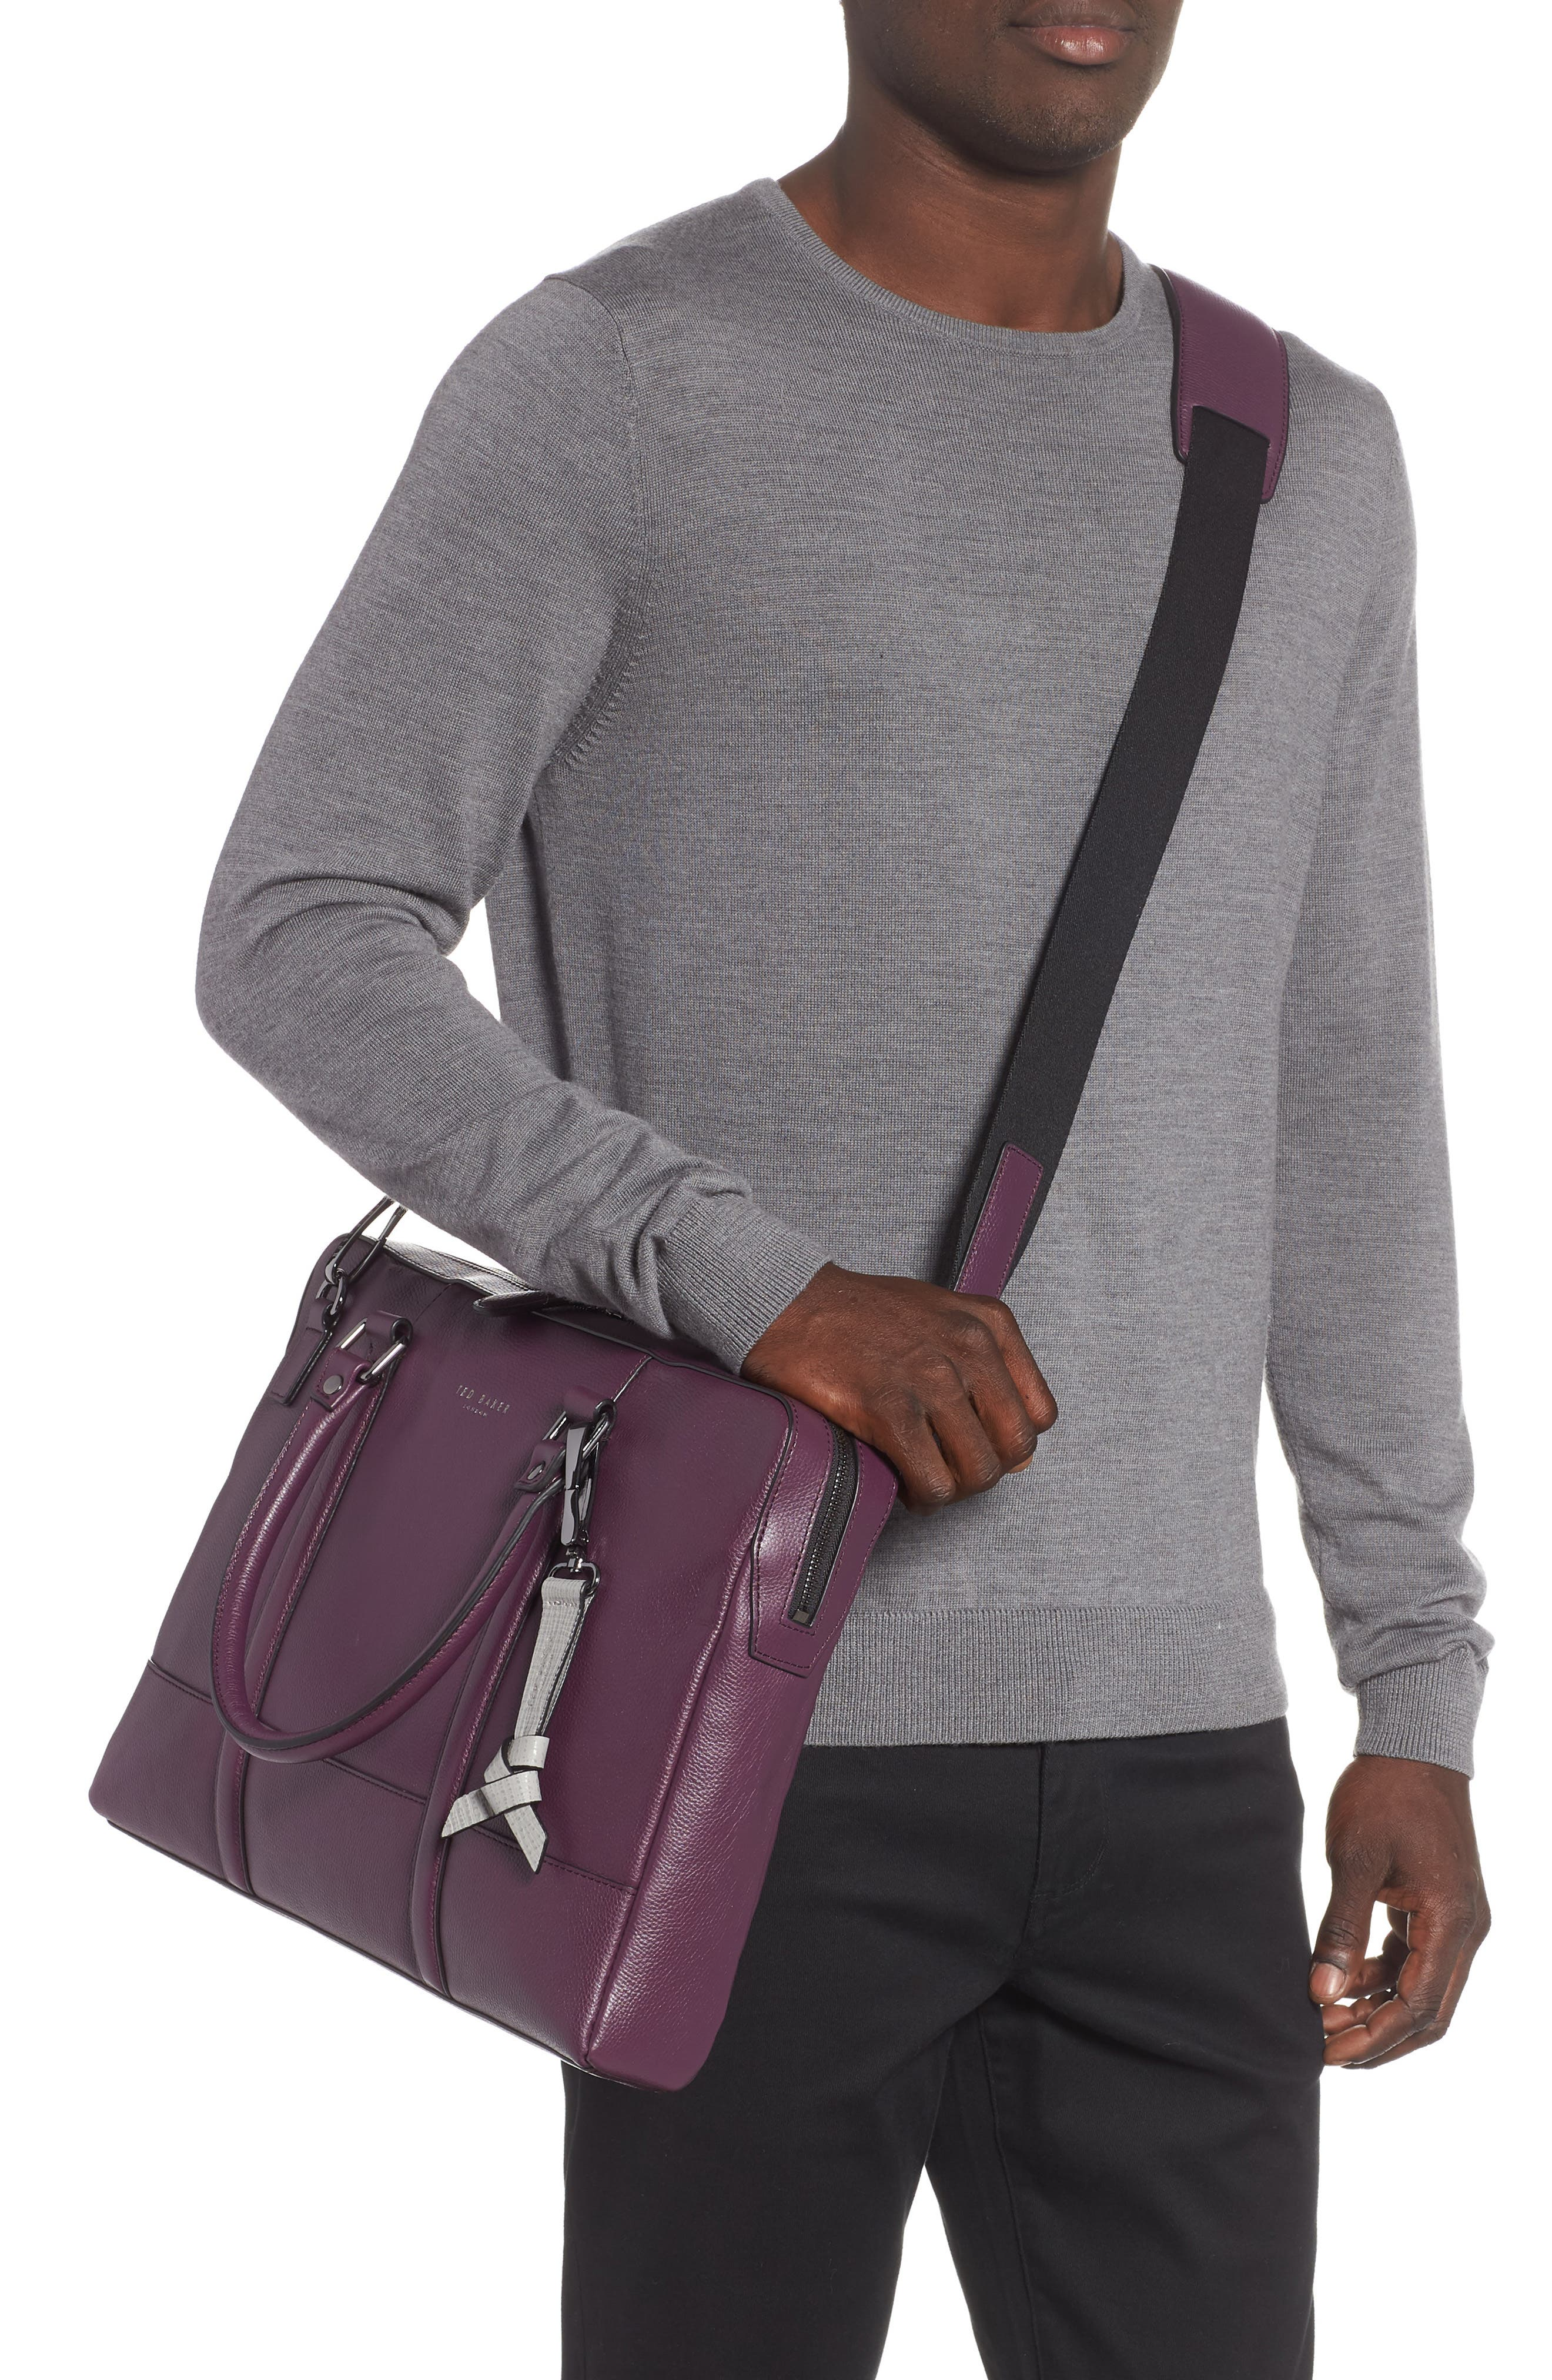 TED BAKER LONDON,                             Hoooch Leather Briefcase,                             Alternate thumbnail 2, color,                             501